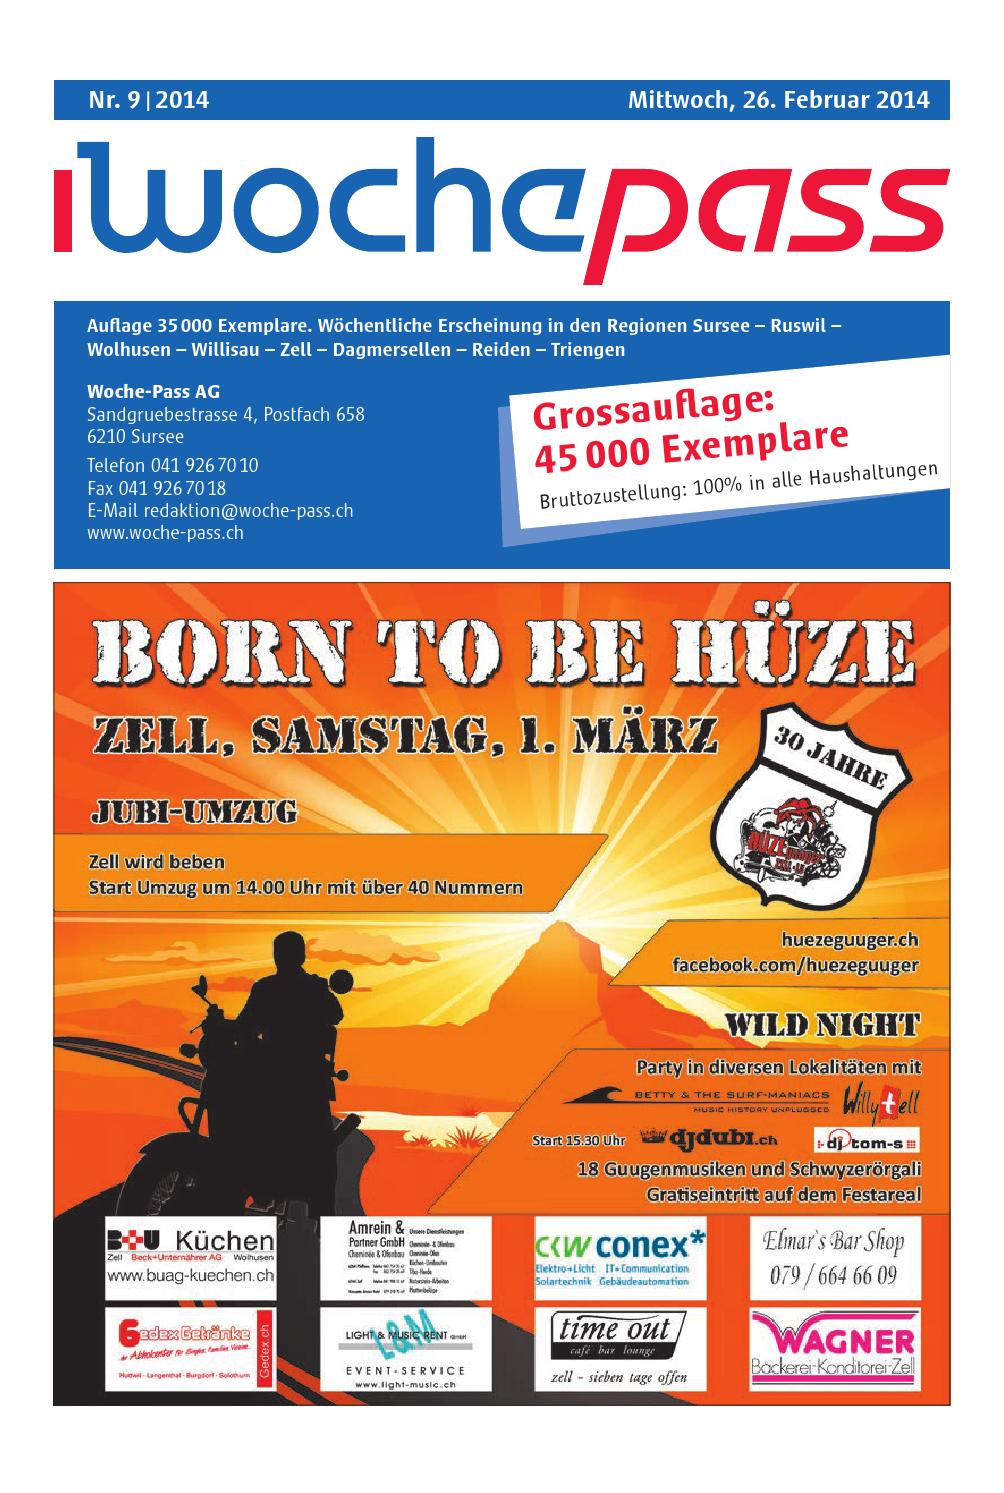 Woche-Pass | KW 9 | 26. Februar 2014 by Woche-Pass AG - issuu